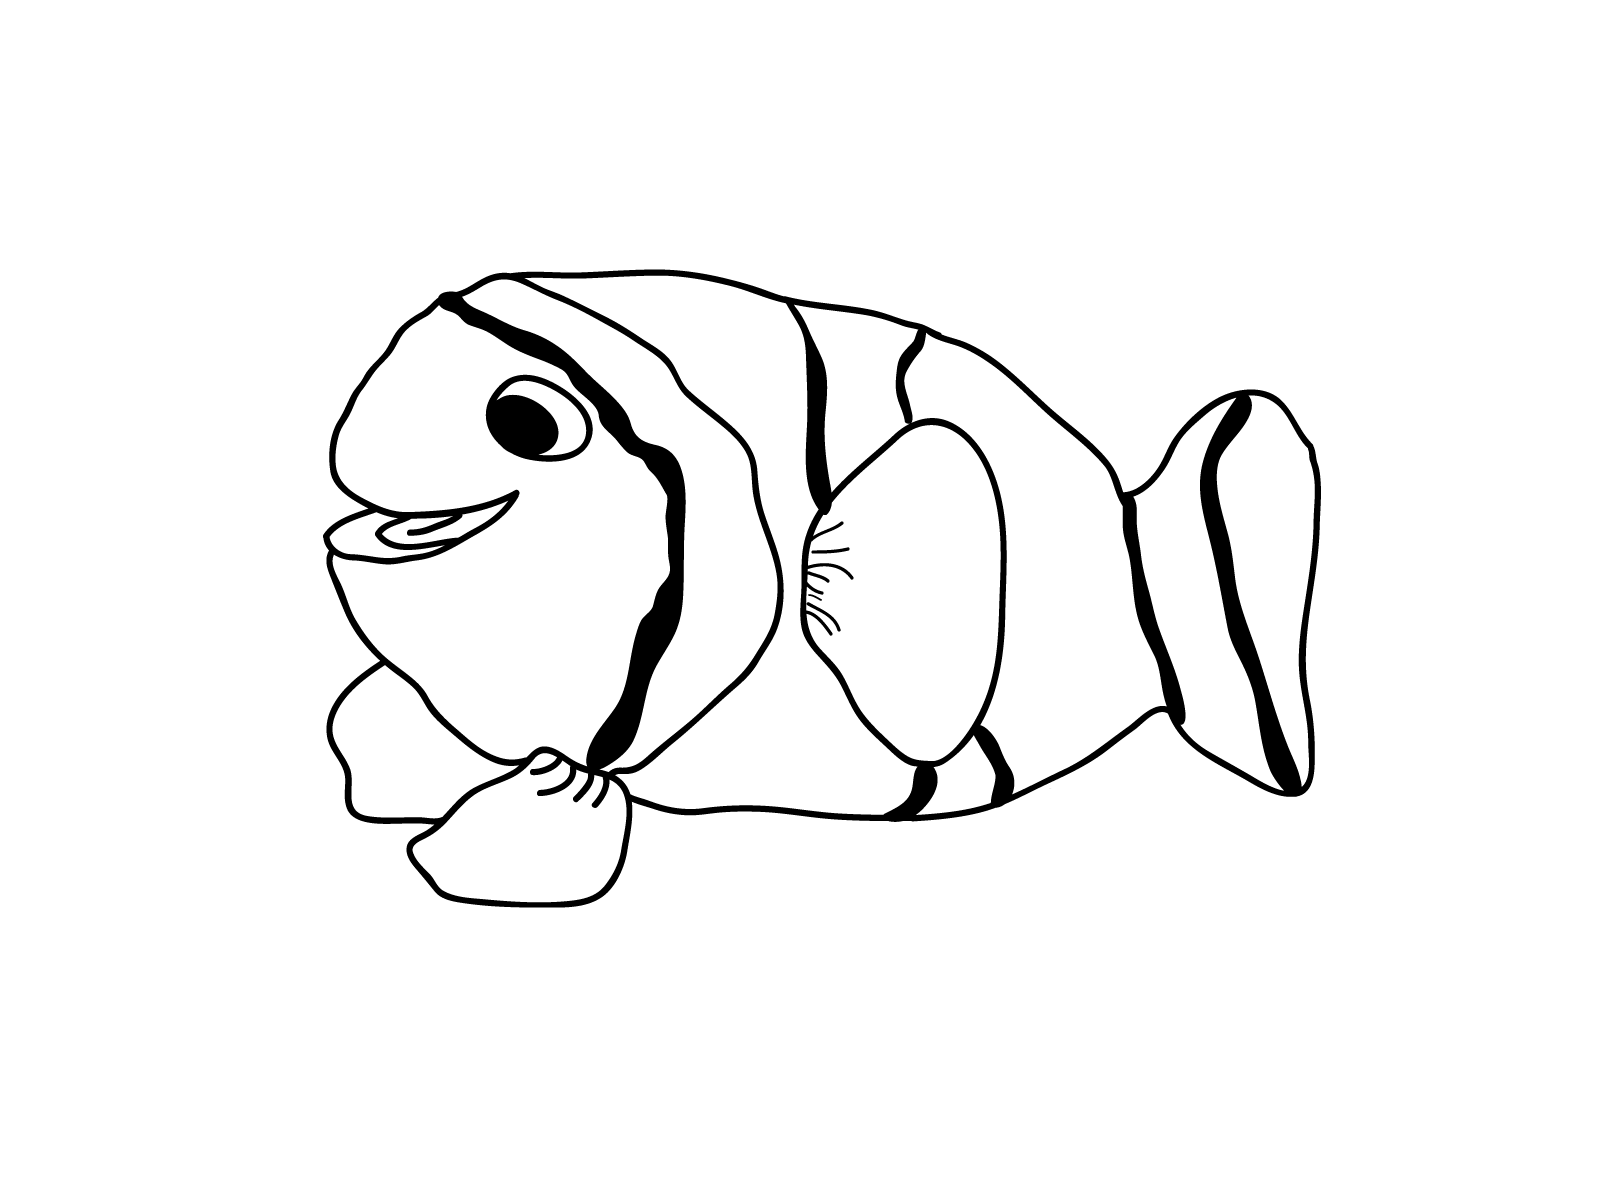 coloring pages for fish print download cute and educative fish coloring pages for pages coloring fish